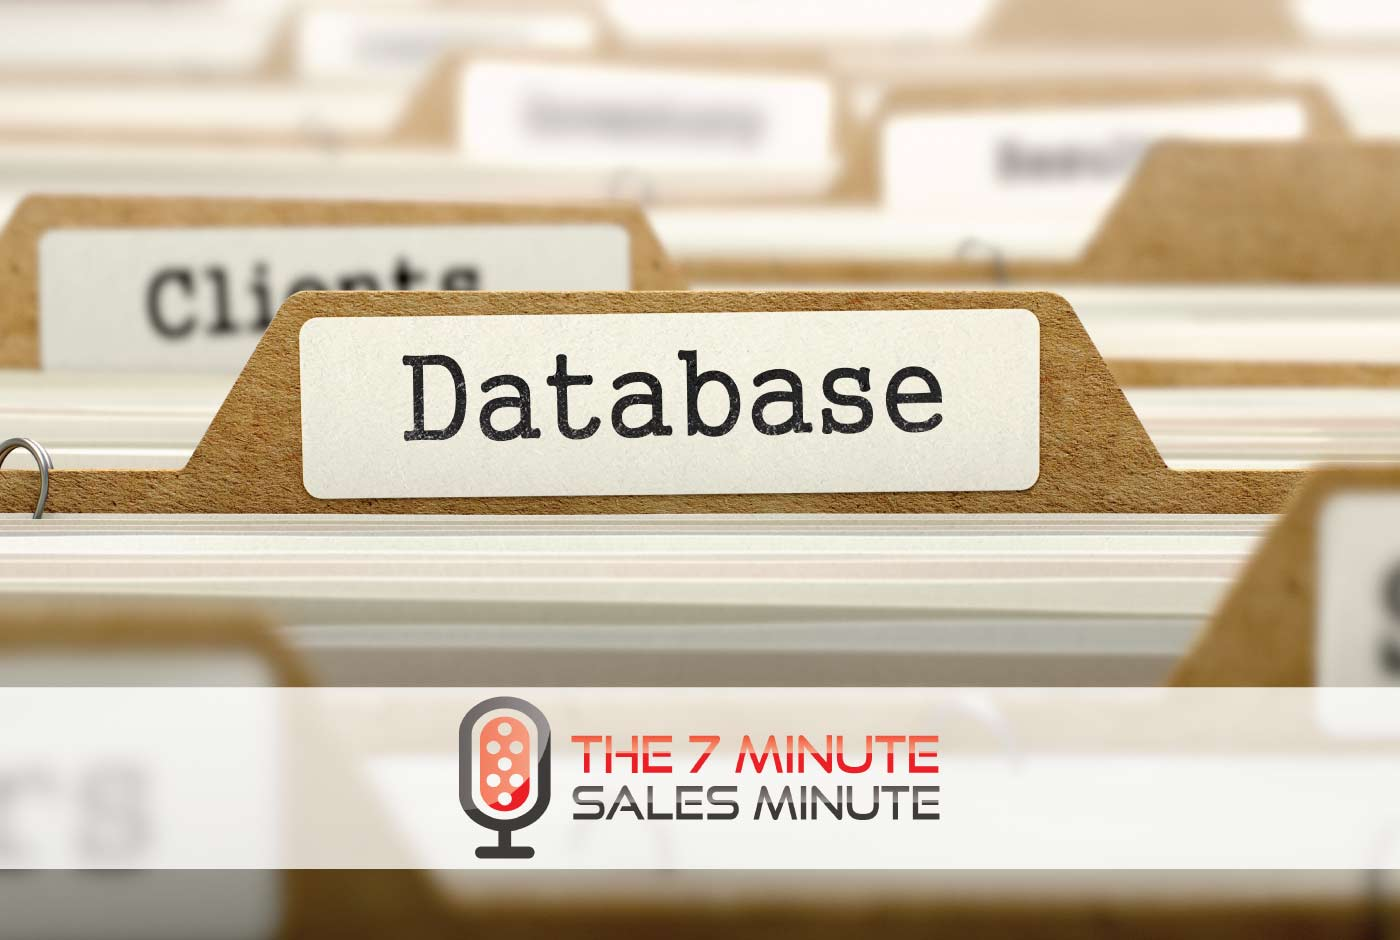 7 Minute Sales Minute Podcast: Season 13 - Episode 9 - All Your Database Are Belong To Us